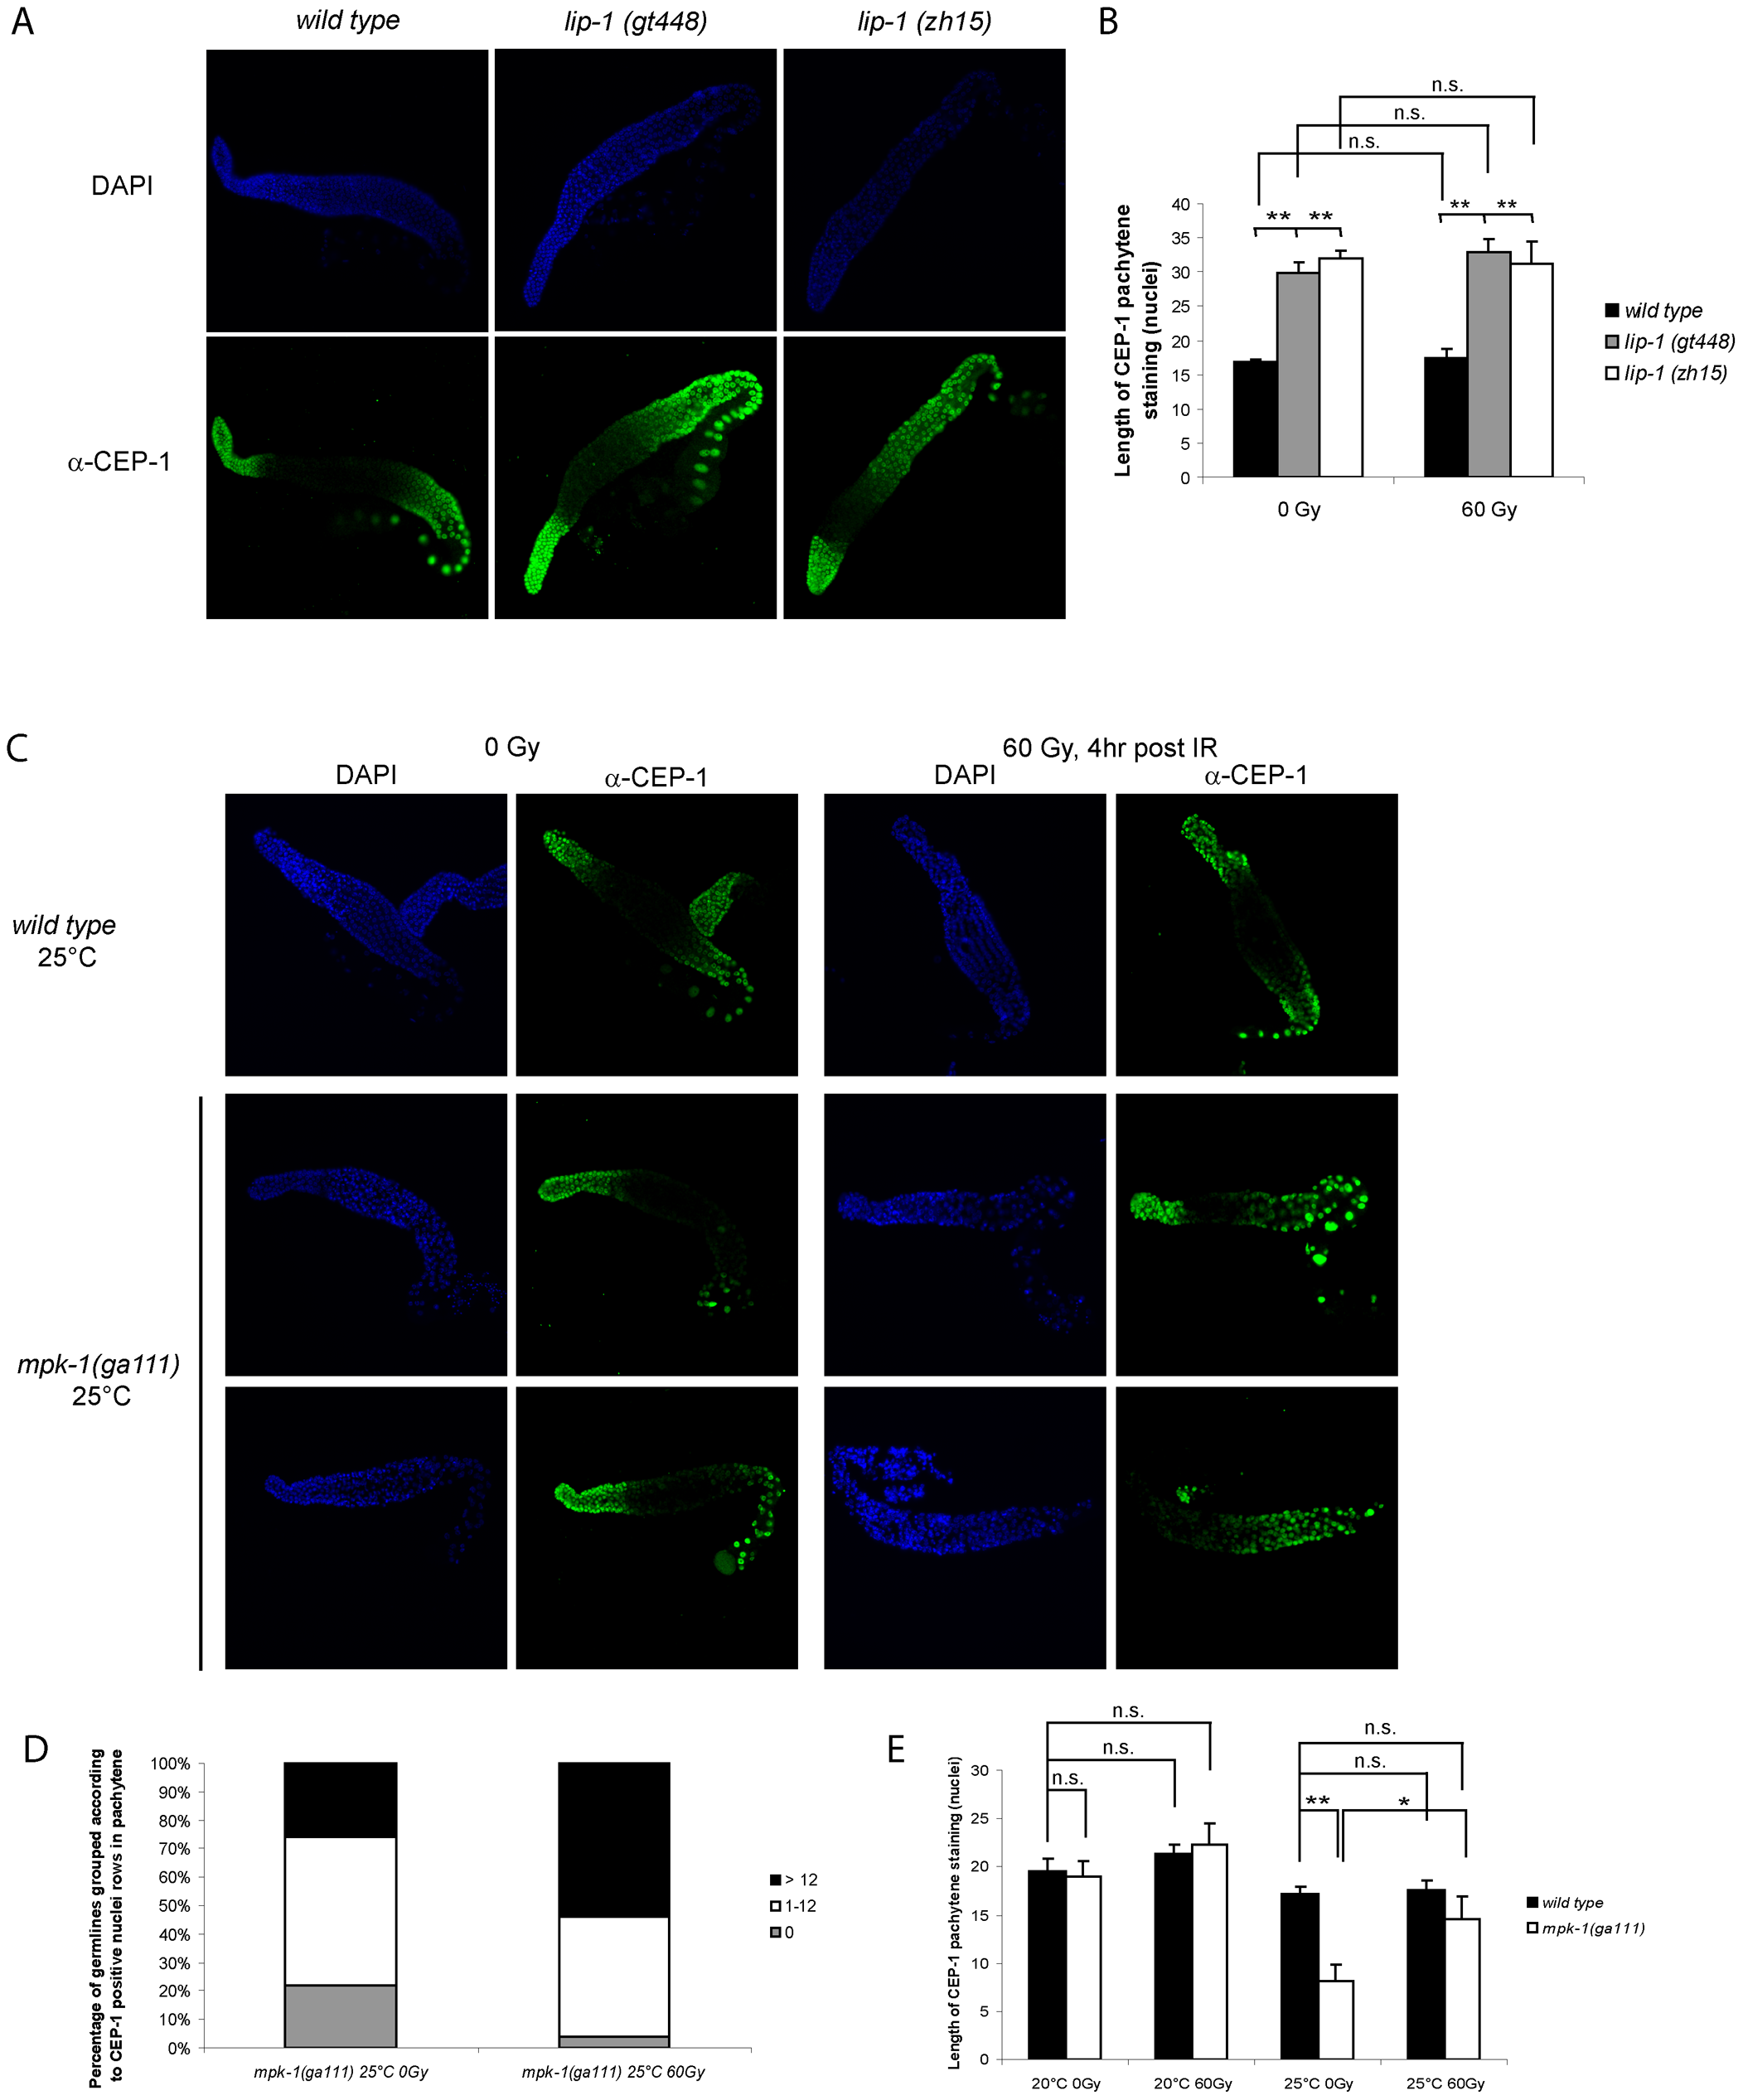 CEP-1 germline expression is affected by MPK-1 signaling.